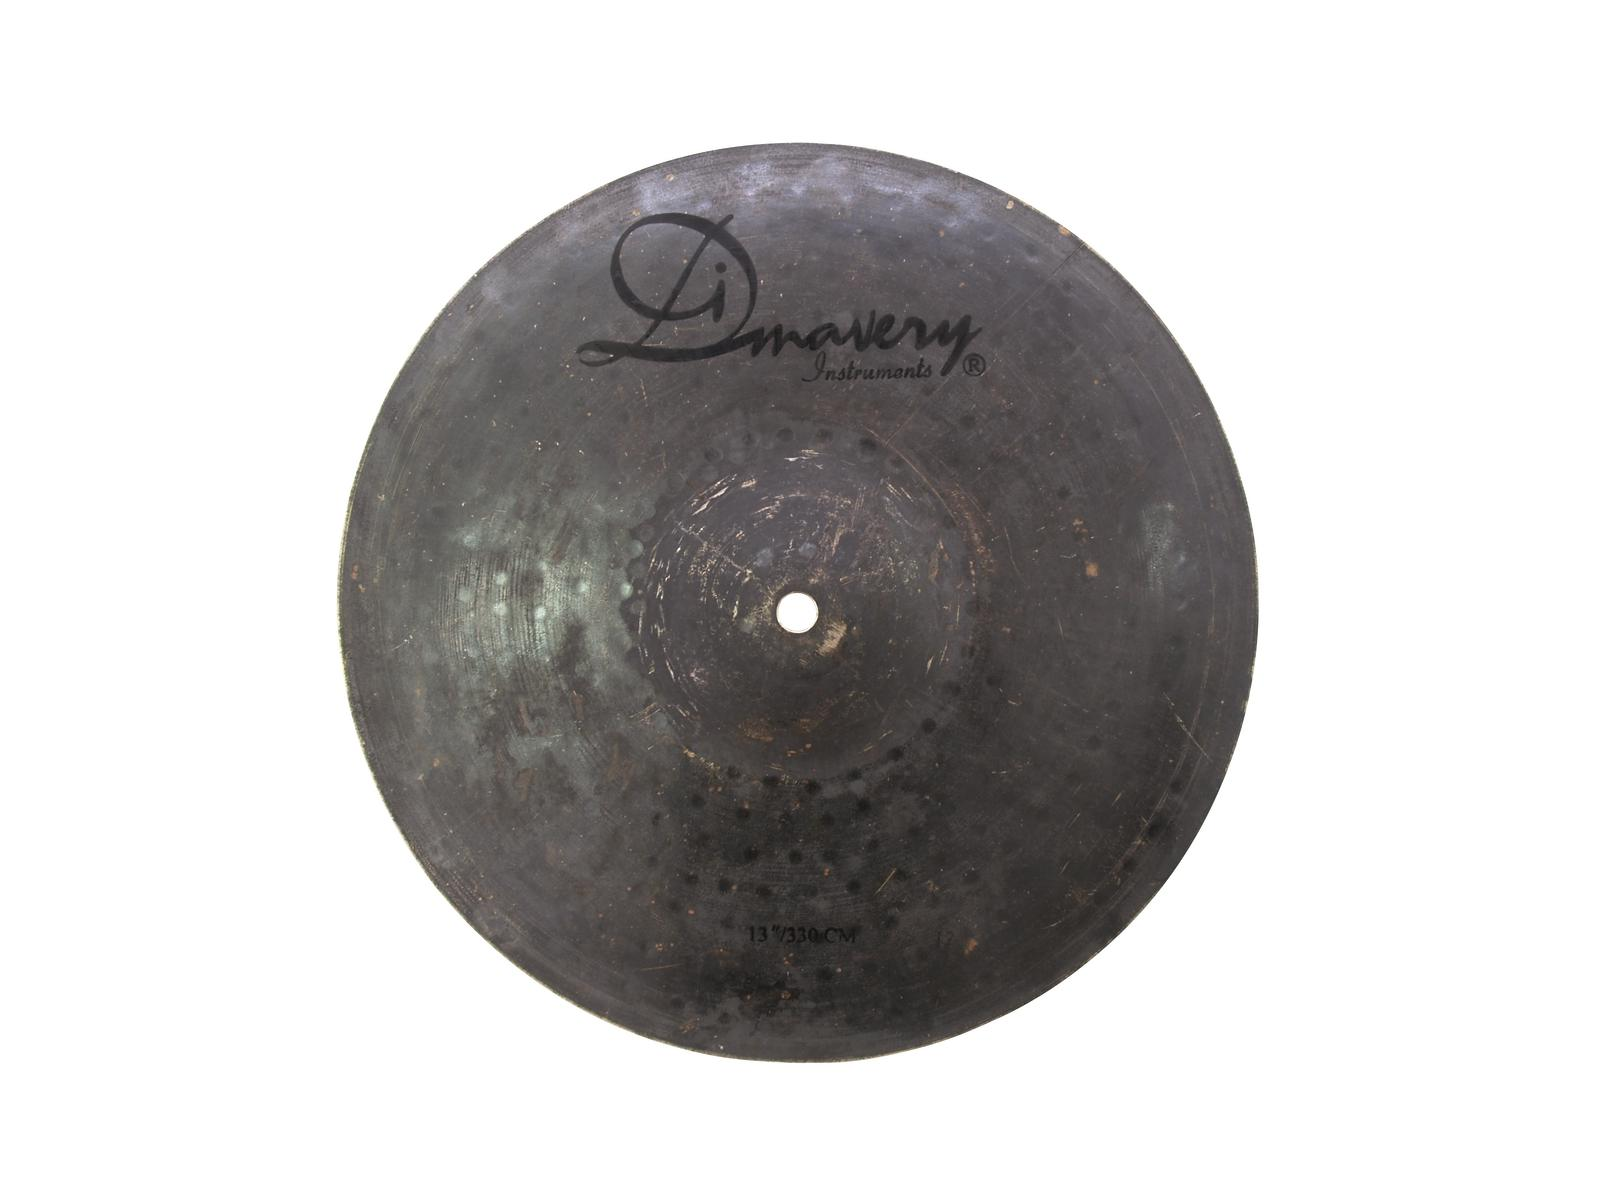 Piatto per batteria acustica, drum, scurito 13-Crash DIMAVERY DBHC-813